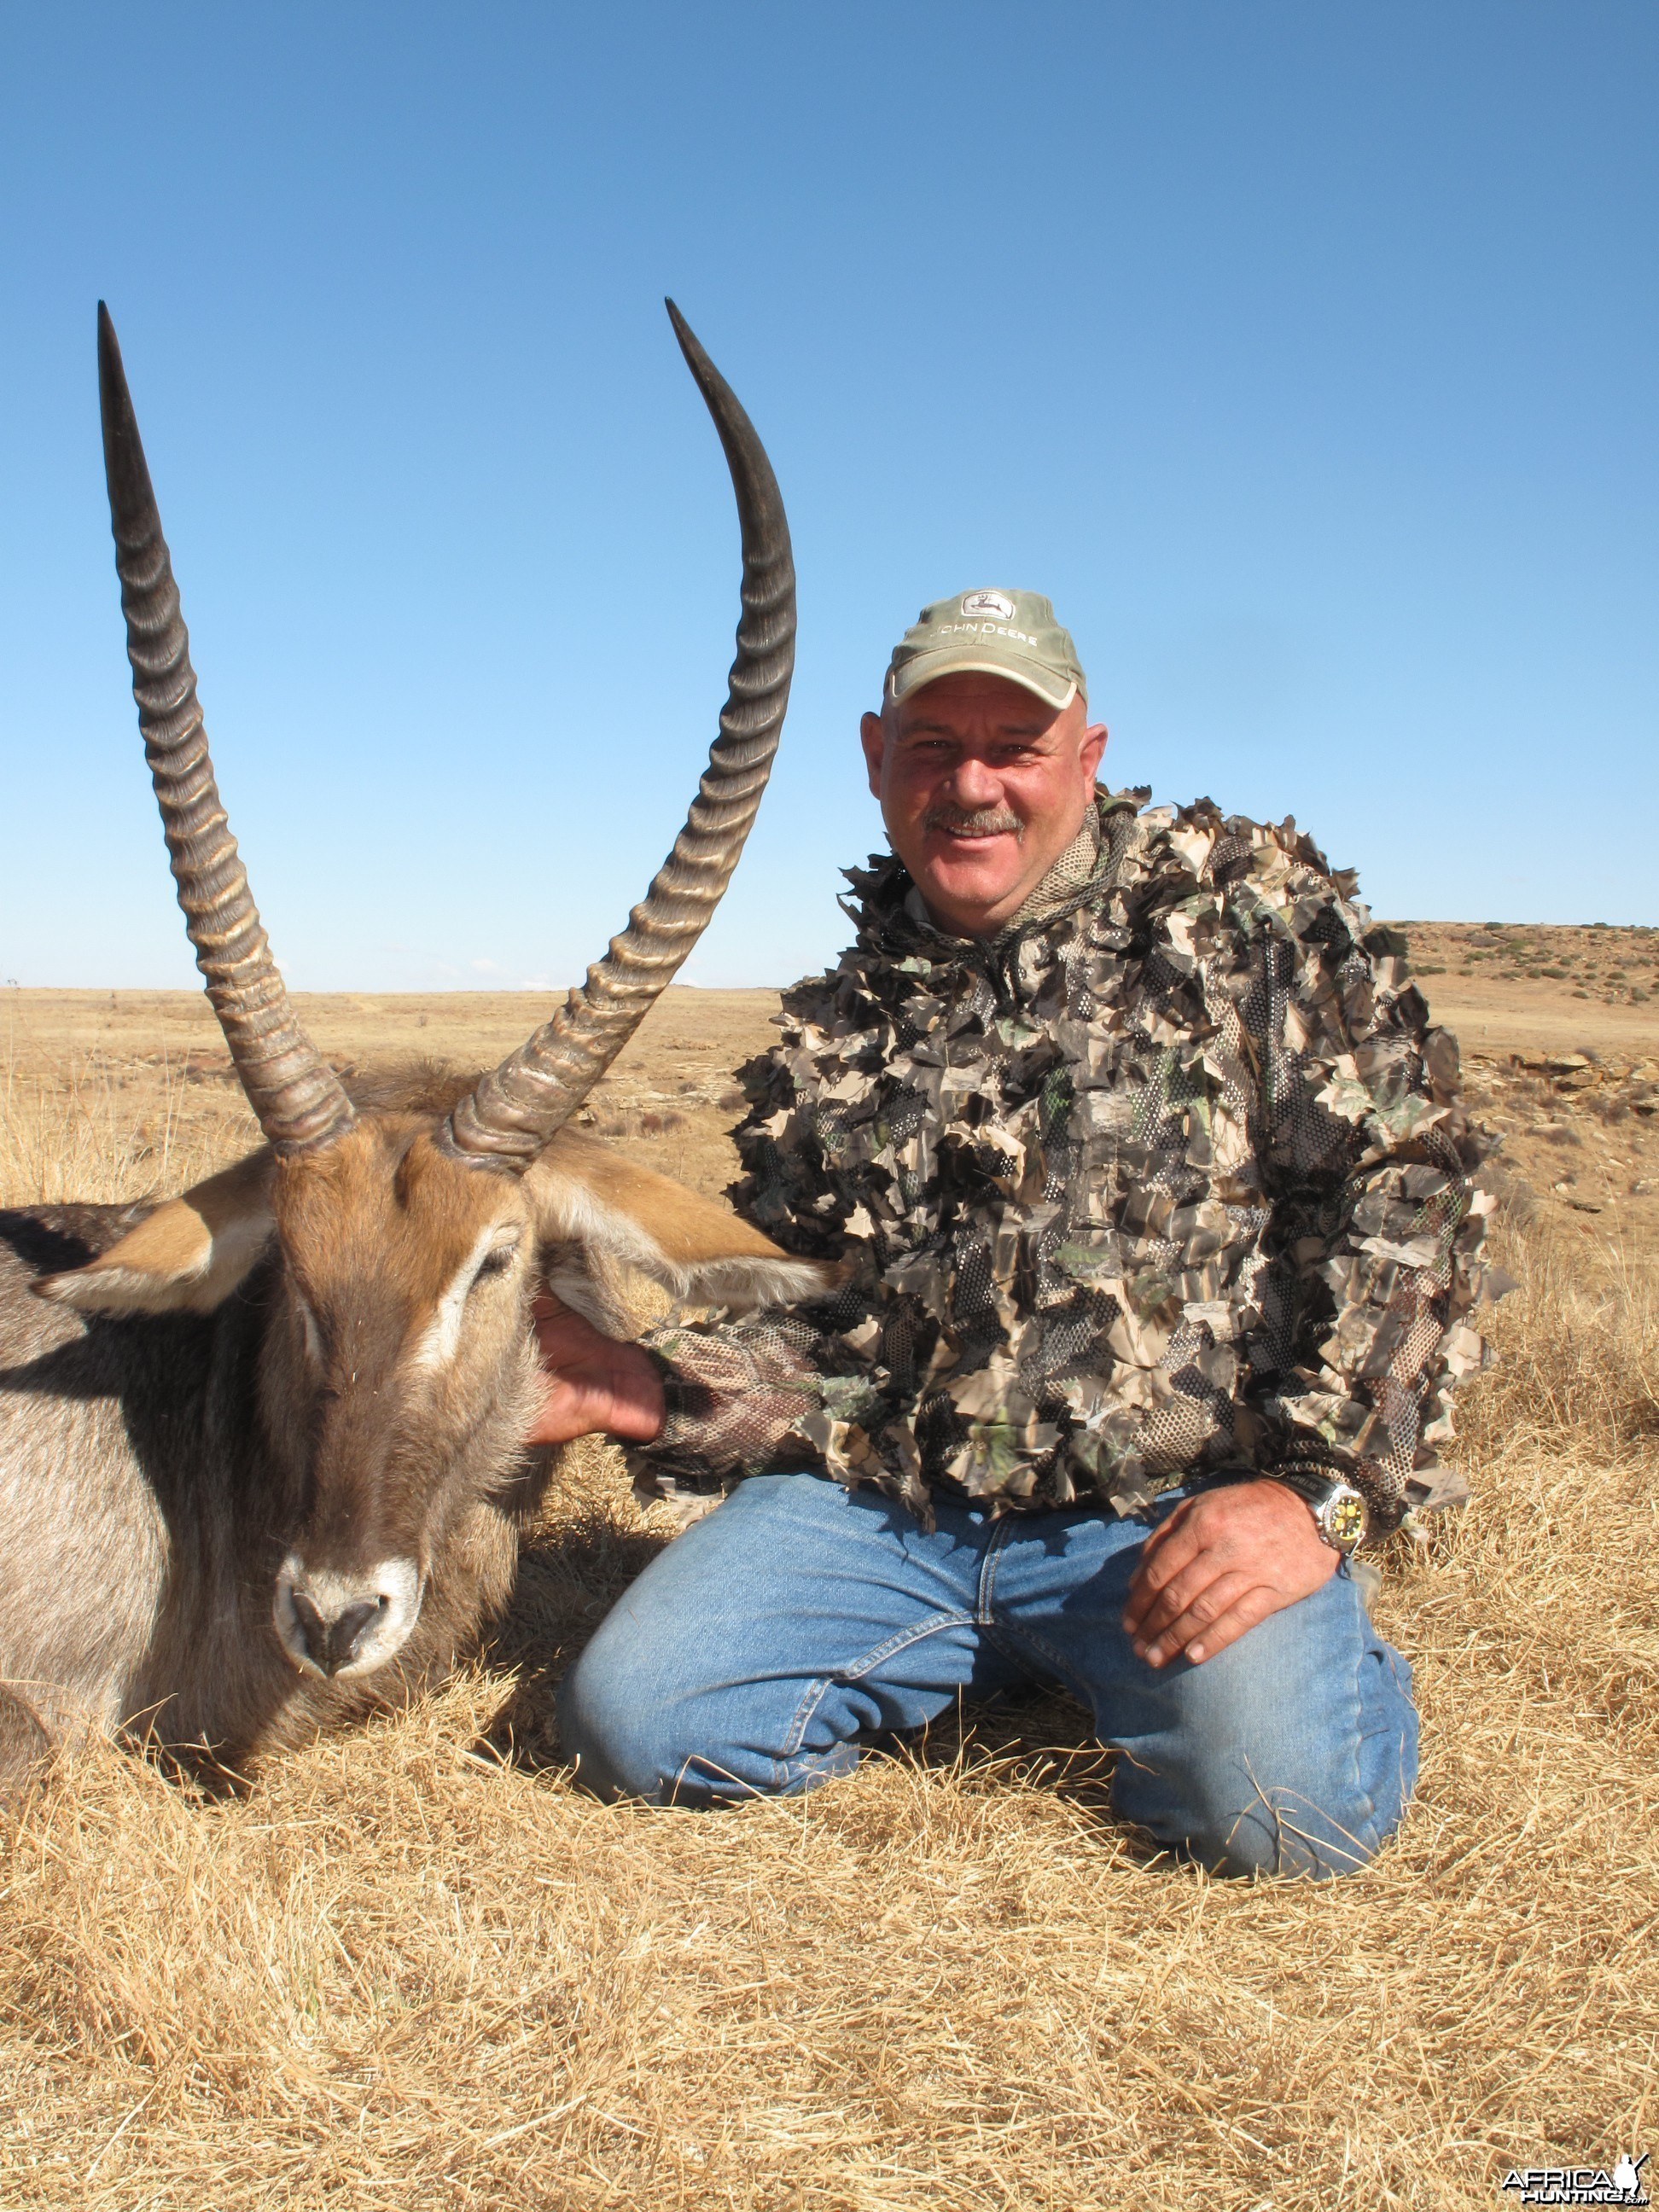 Waterbuck 28+ with bow, Hunting with Clients